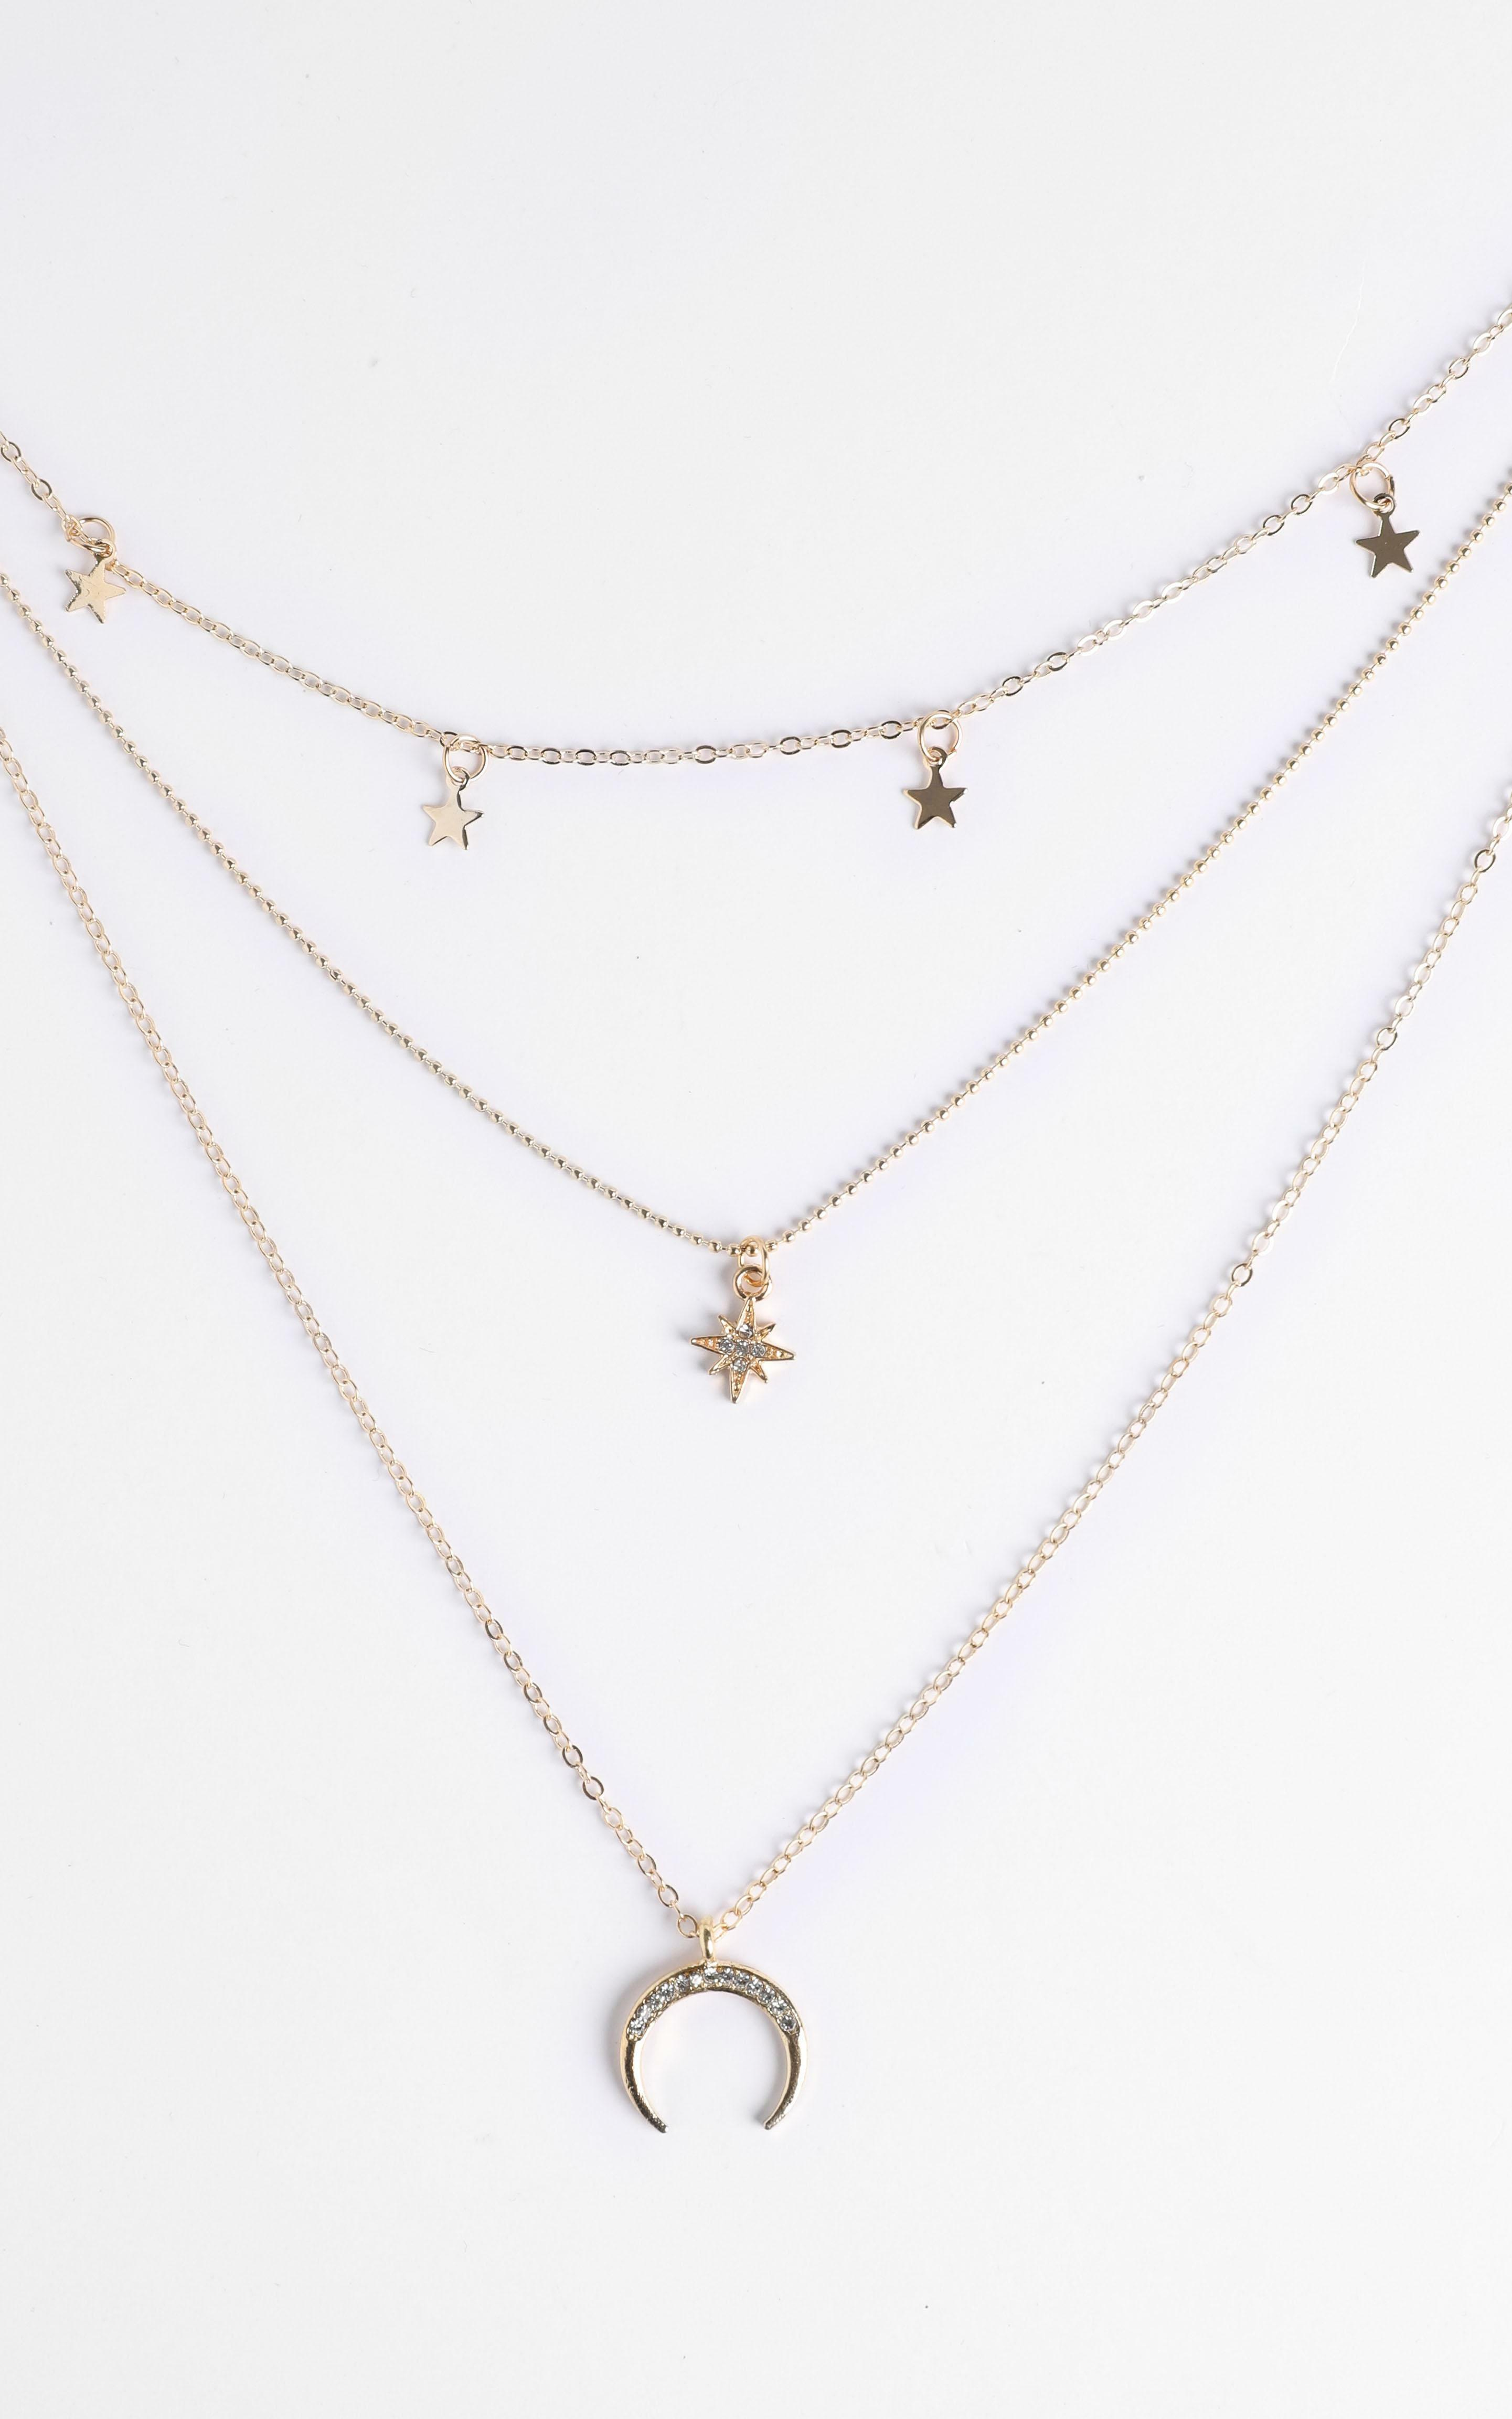 Alissa Star Layered Necklace in Gold, GLD1, hi-res image number null